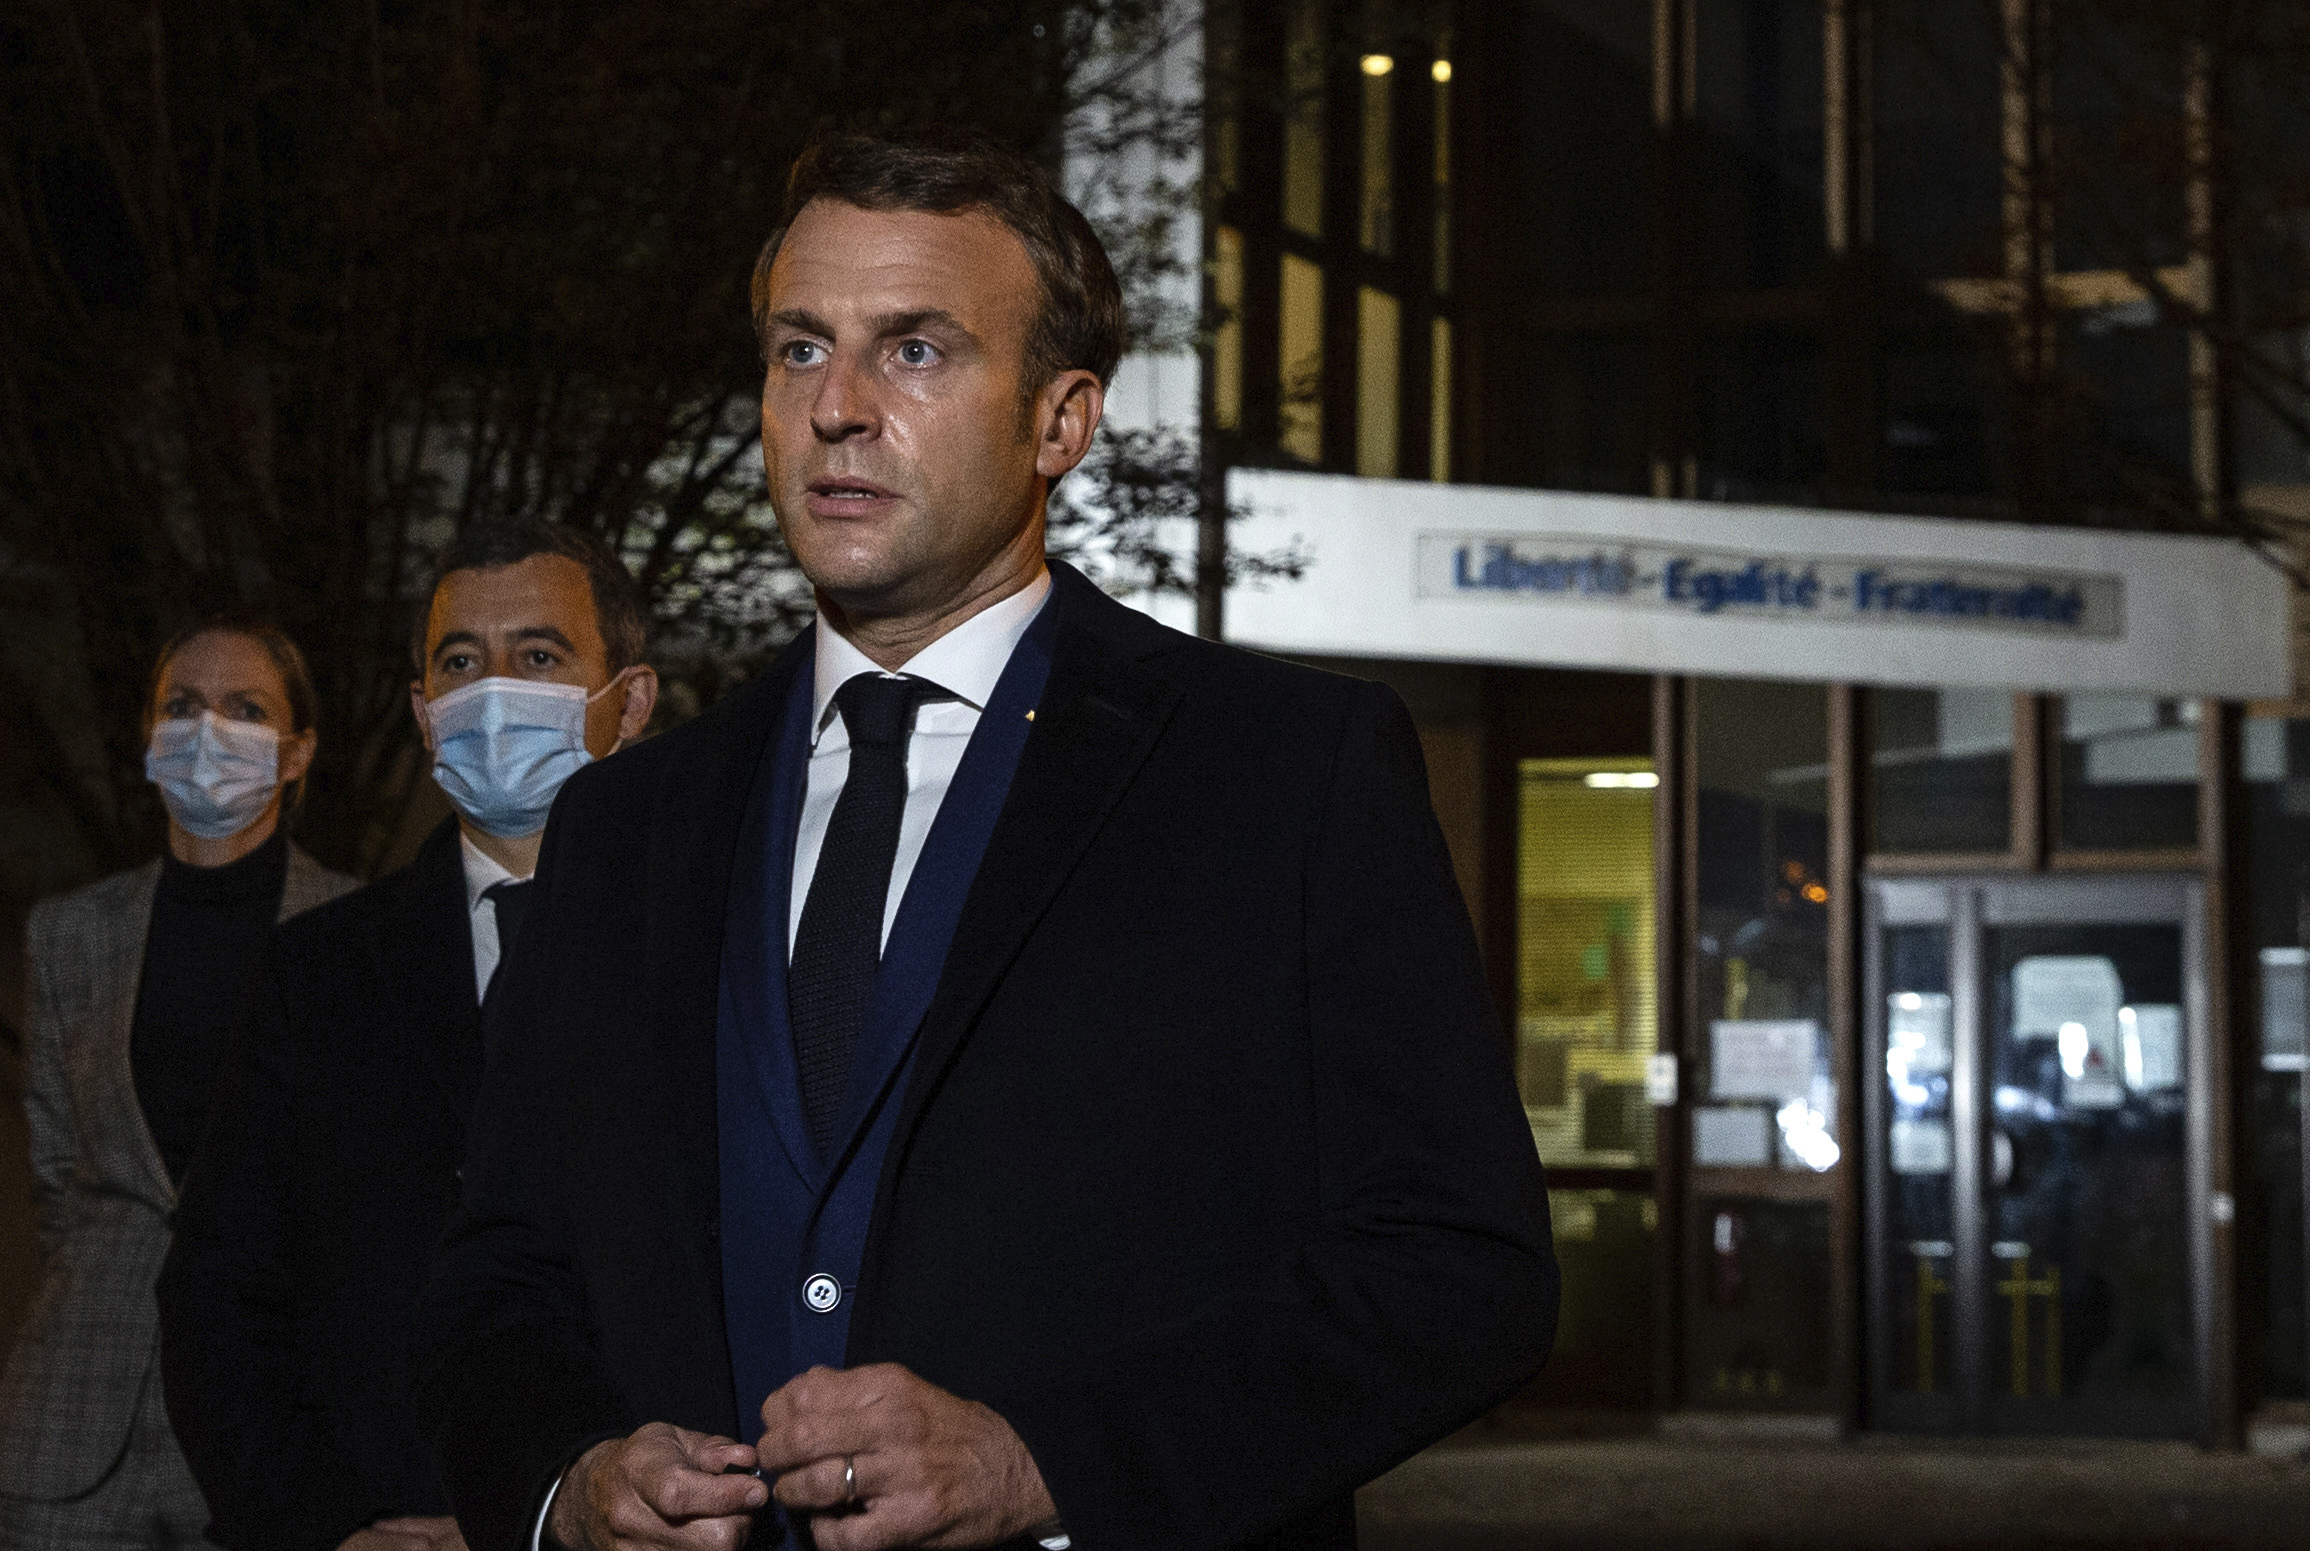 French President Emmanuel Macron, flanked by French Interior Minister Gerald Darmanin, second left, speaks in front of a high school Oct.16, 2020 in Conflans Sainte-Honorine.